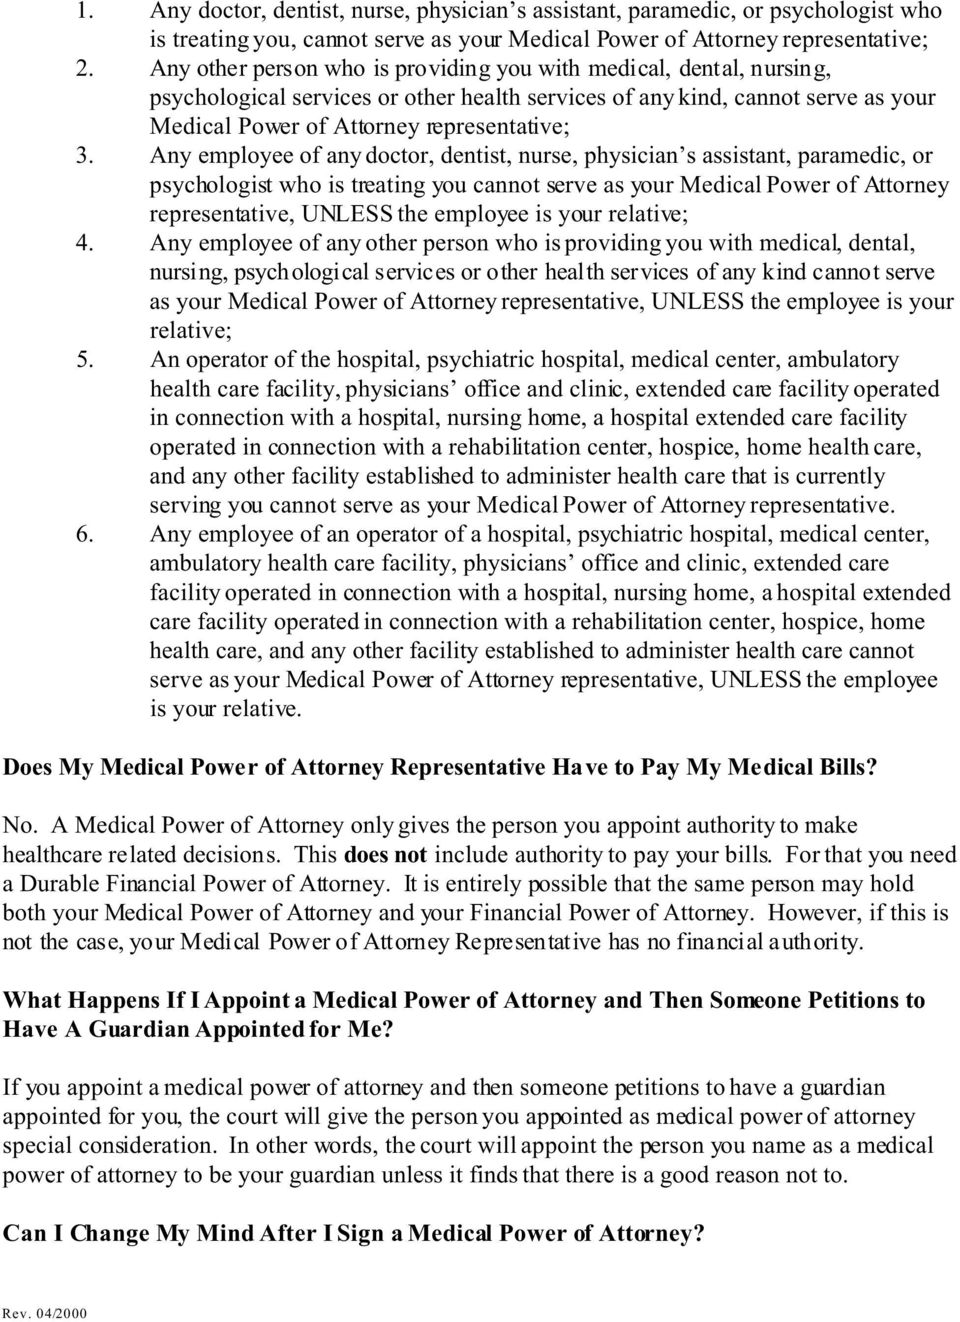 Any employee of any doctor, dentist, nurse, physician s assistant, paramedic, or psychologist who is treating you cannot serve as your Medical Power of Attorney representative, UNLESS the employee is